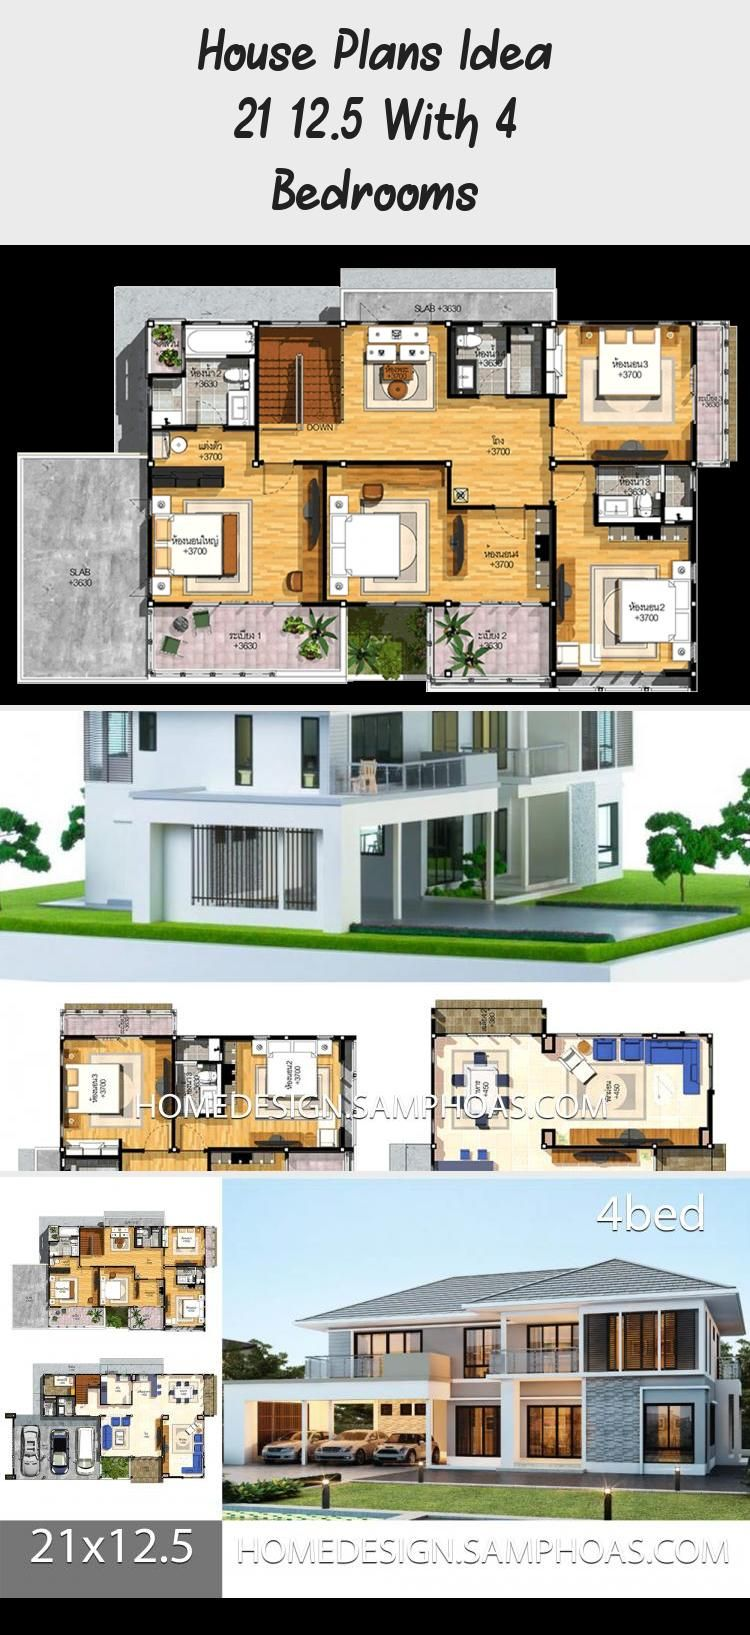 House Plans Idea 21x12 5 With 4 Bedrooms Home Ideassearch Countryfloorplans Housefloorplans Duplexfloor In 2020 House Plans Country Floor Plans Duplex Floor Plans